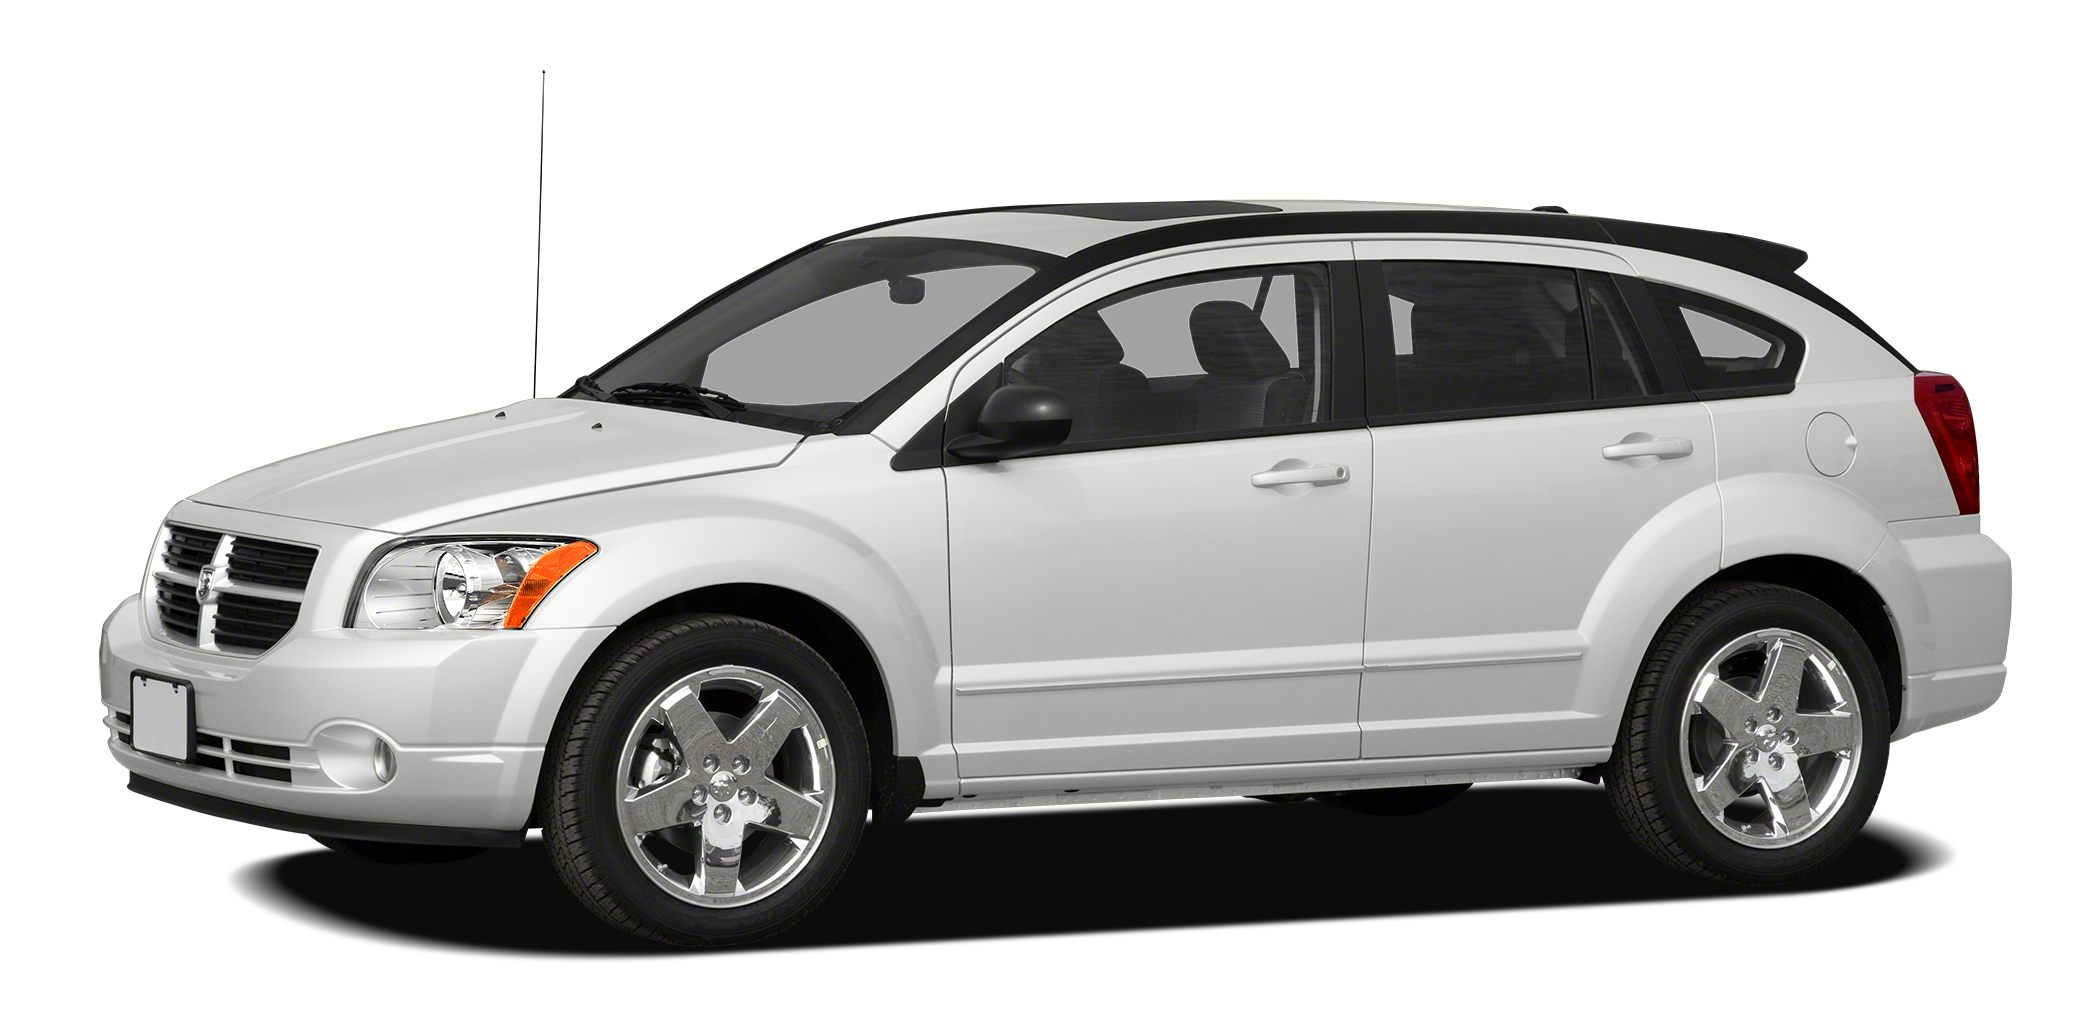 2012 Dodge Caliber SXT Win a bargain on this 2012 Dodge Caliber SXT before someone else snatches i